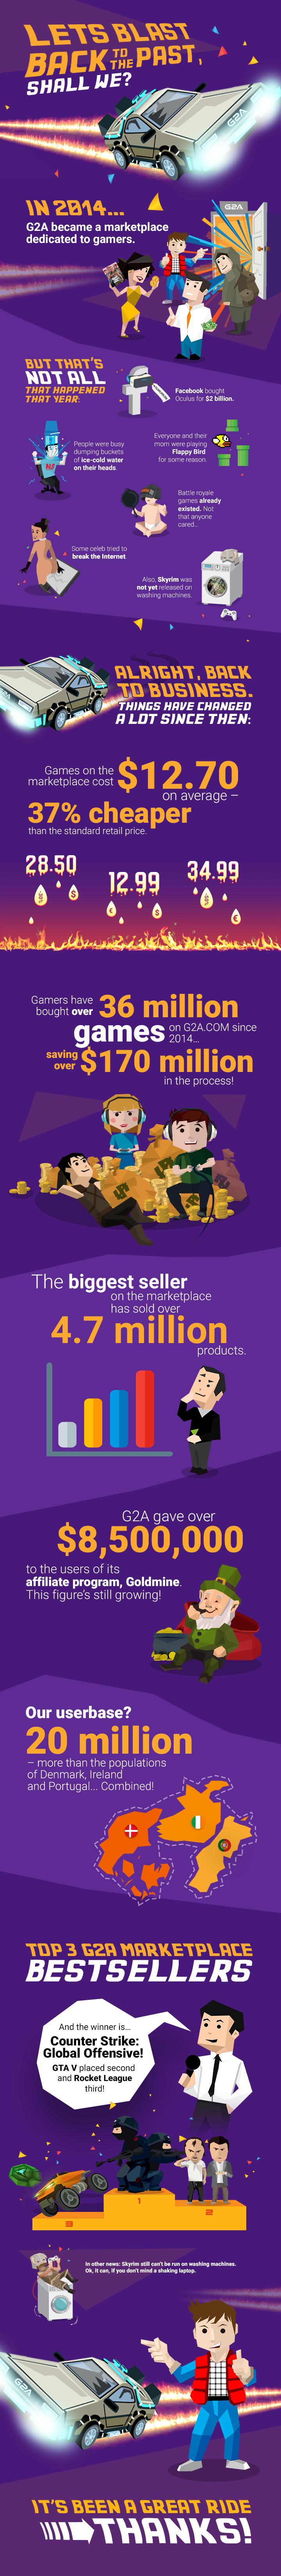 infographic g2a 5th birthday